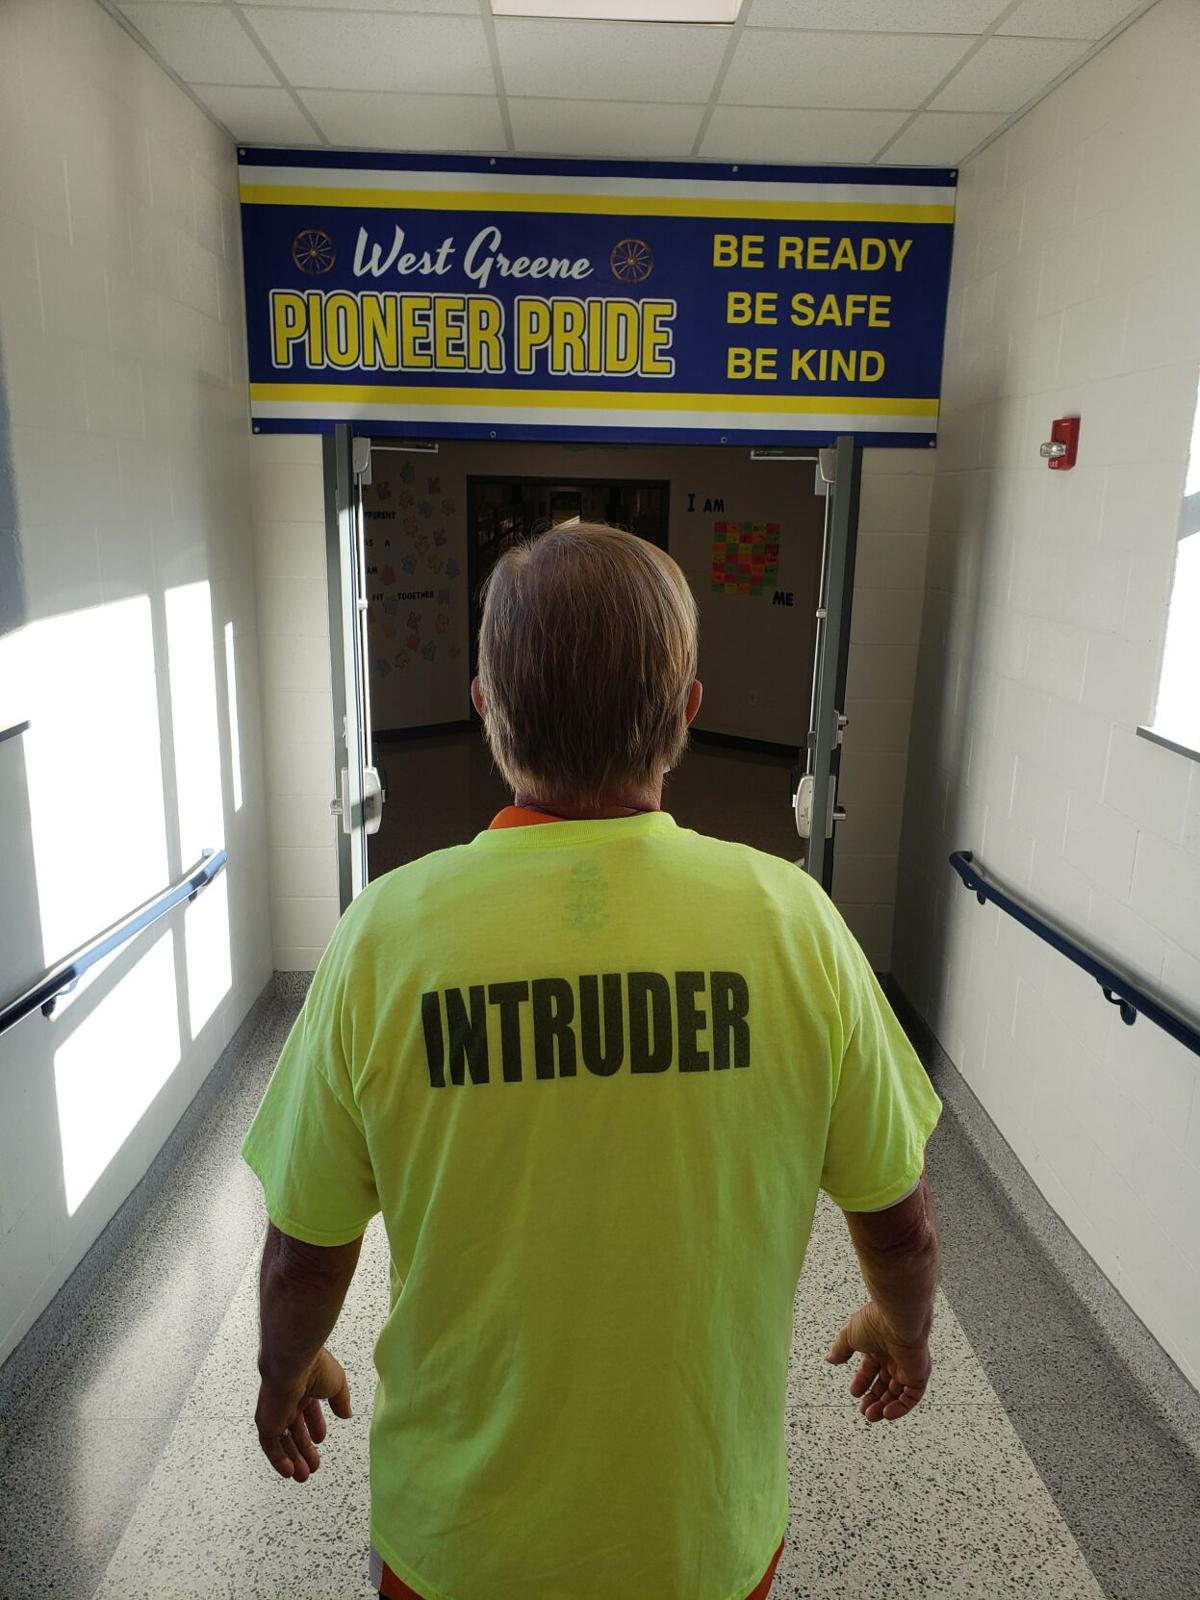 West Greene School District holds mock lockdown drill for students' safety